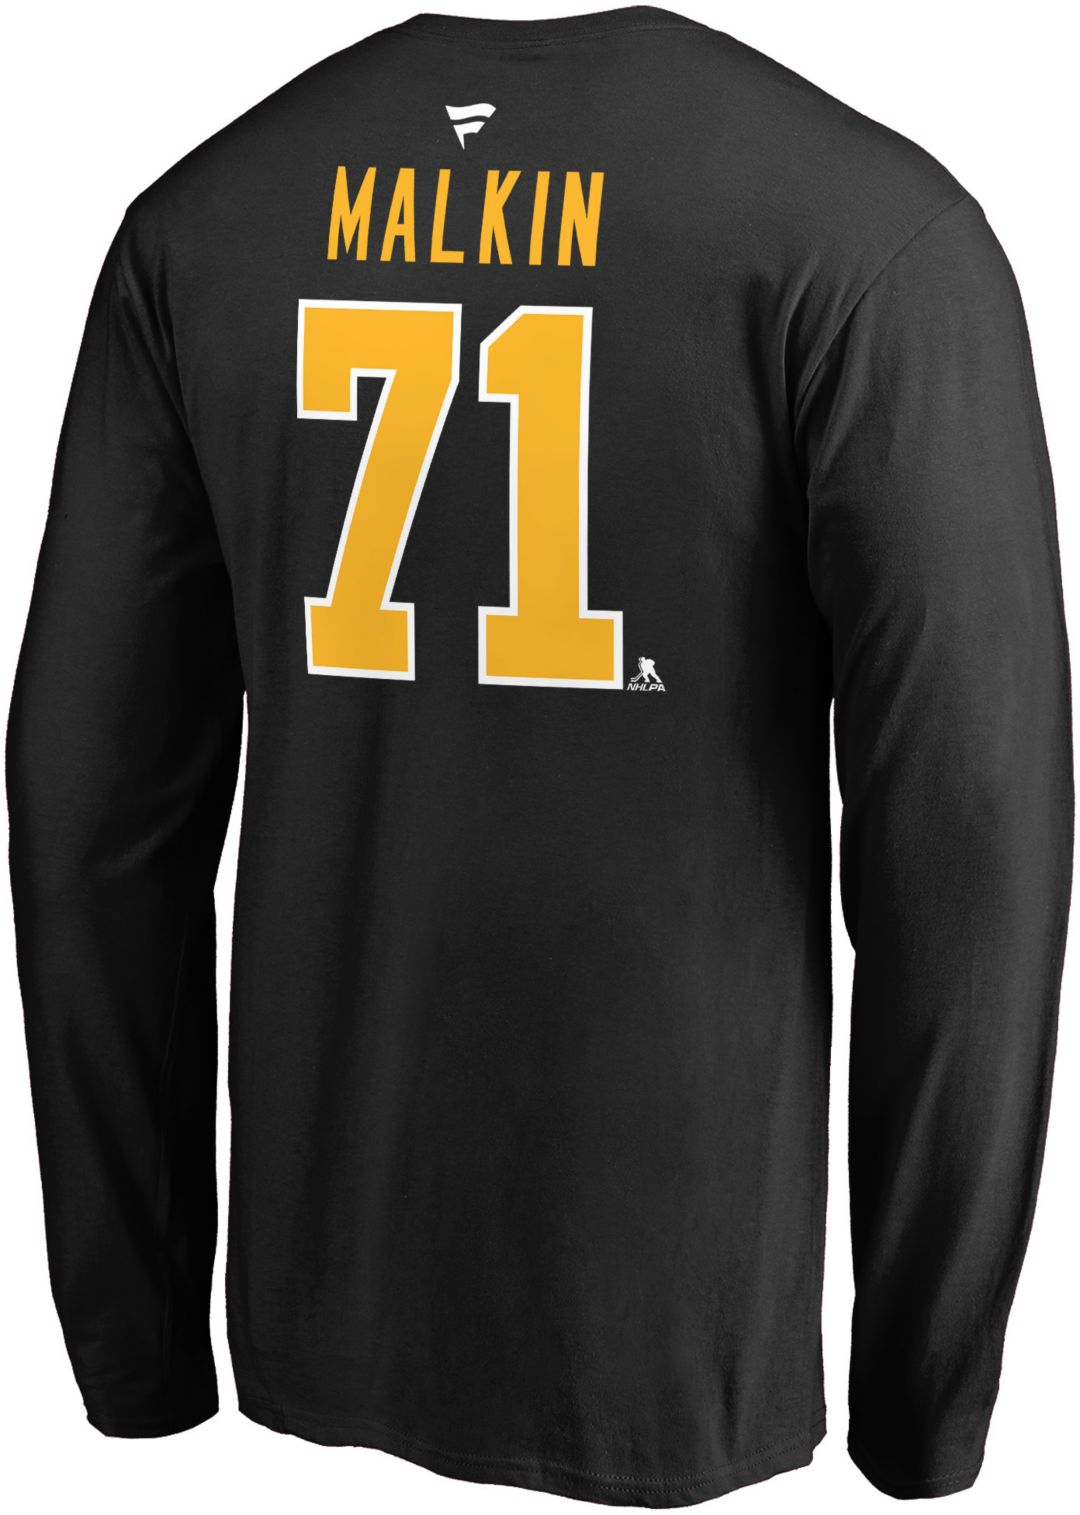 online store fc55e f62ce NHL Men's Pittsburgh Penguins Evgeni Malkin #71 Black Long Sleeve Player  Shirt